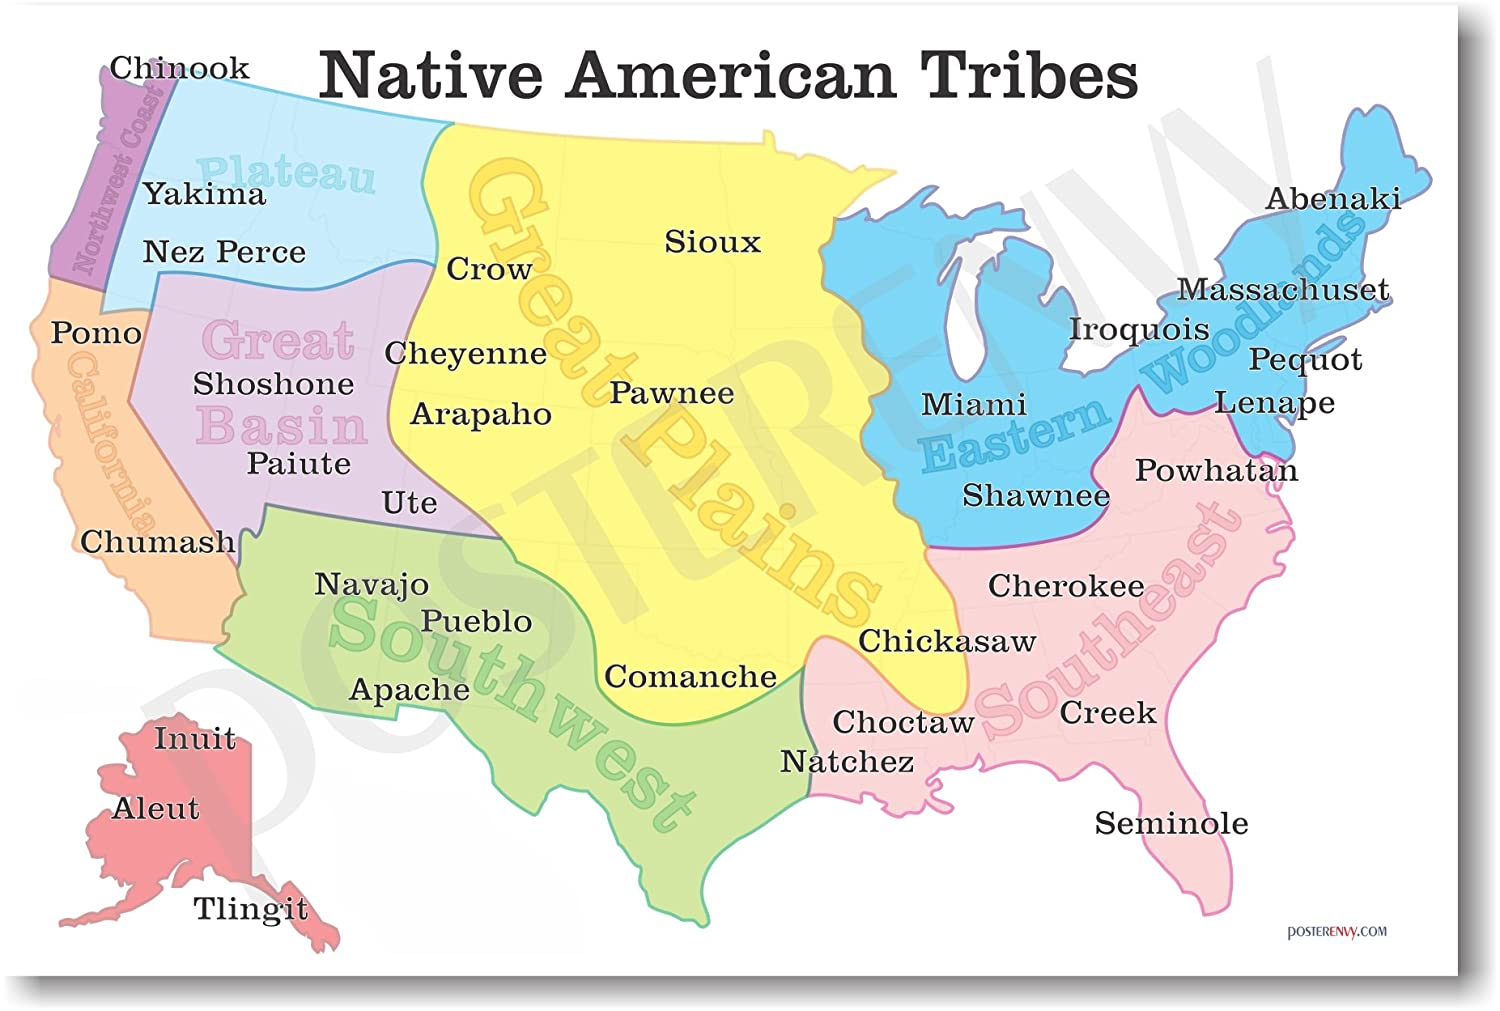 Amazoncom Native American Tribes Map US History Classroom - Us native american map